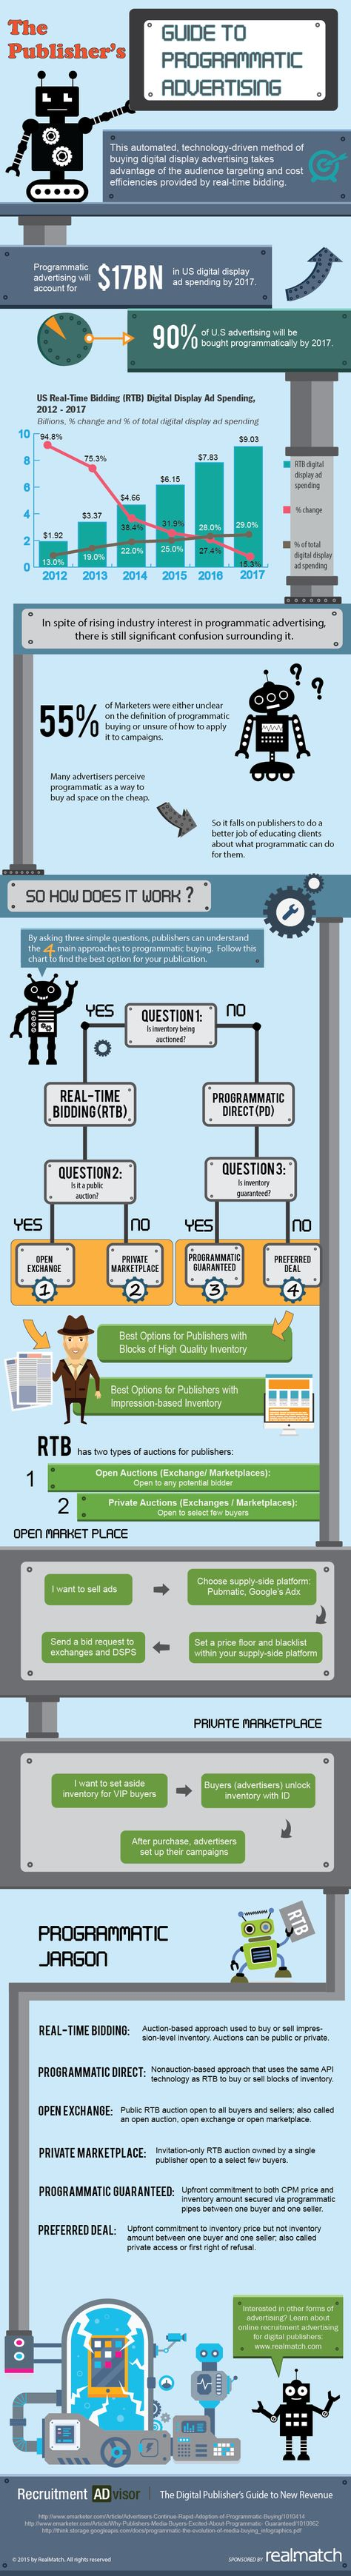 The Publisher's Guide to Programmatic Advertising-Infographic